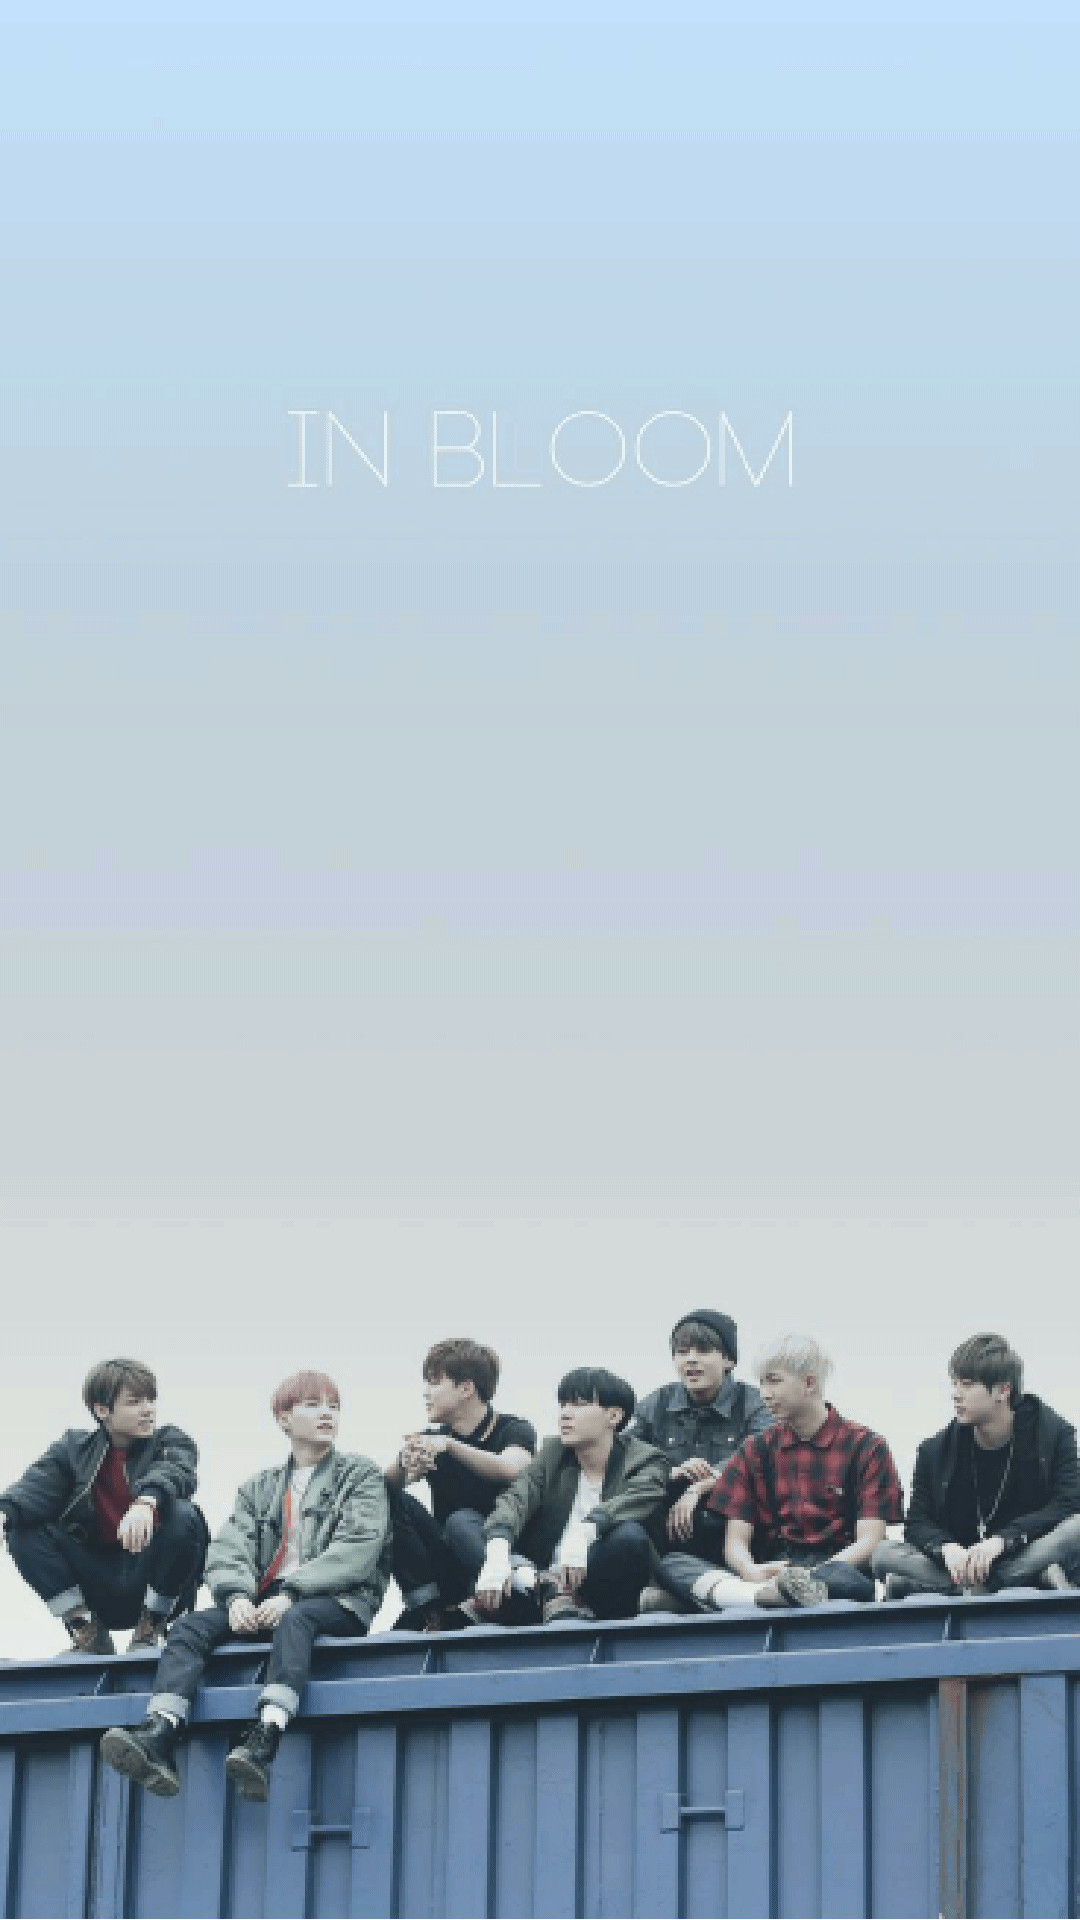 BTS Wallpaper I Need You 86 images 1080x1920